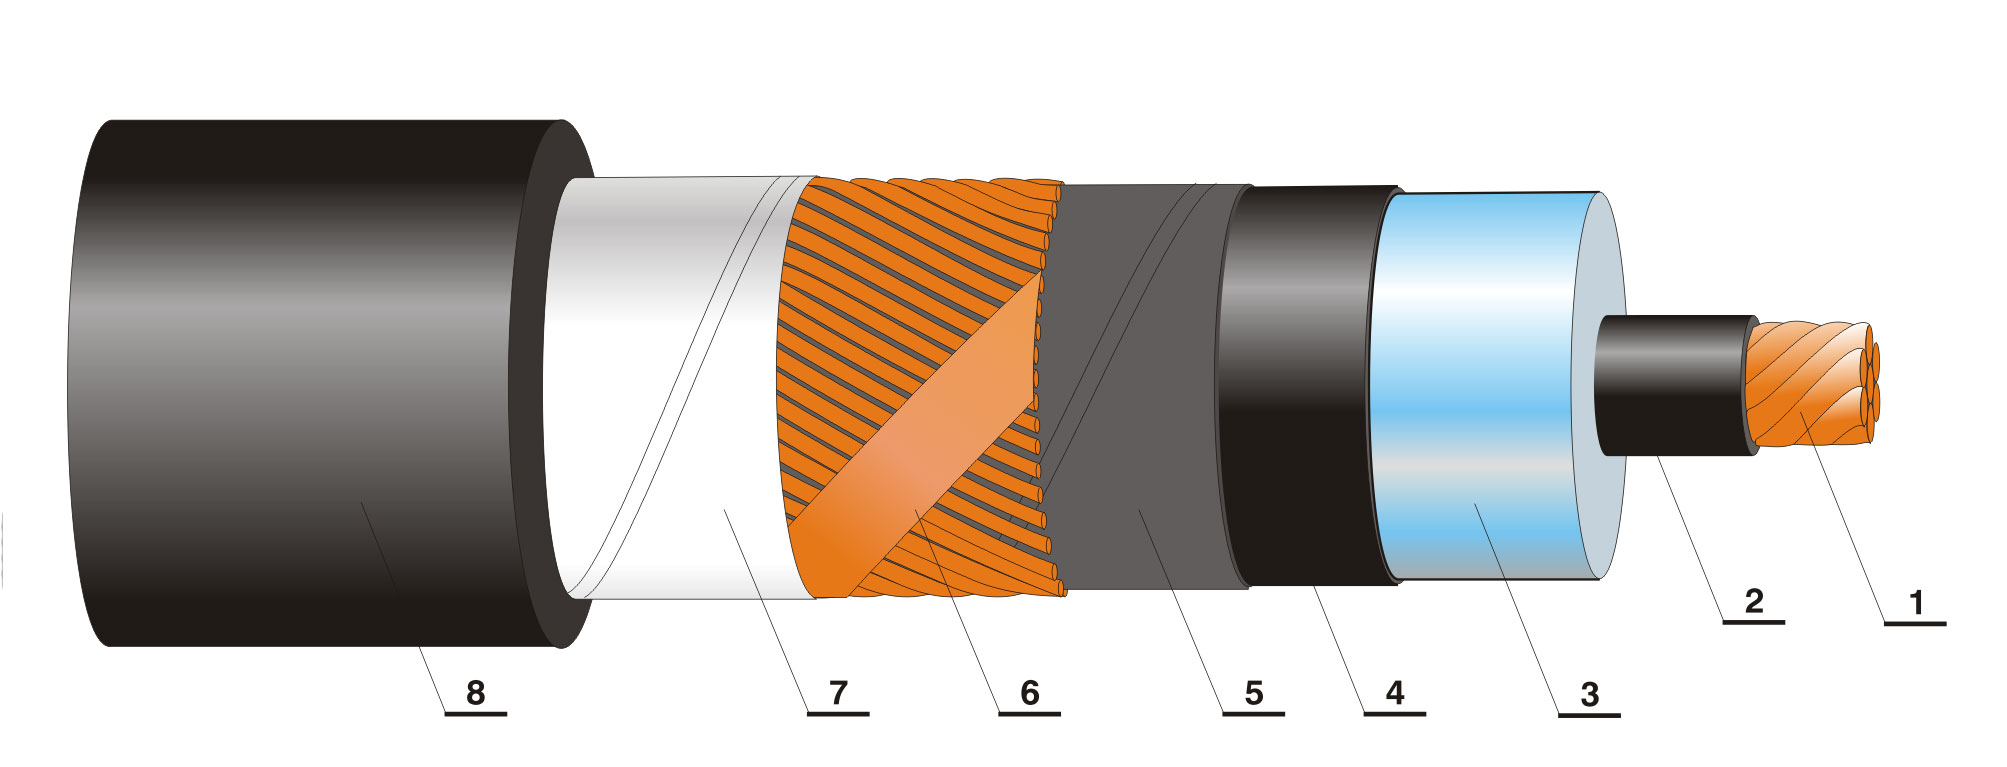 High Voltage Electrical Cable : High voltage power cable gallery